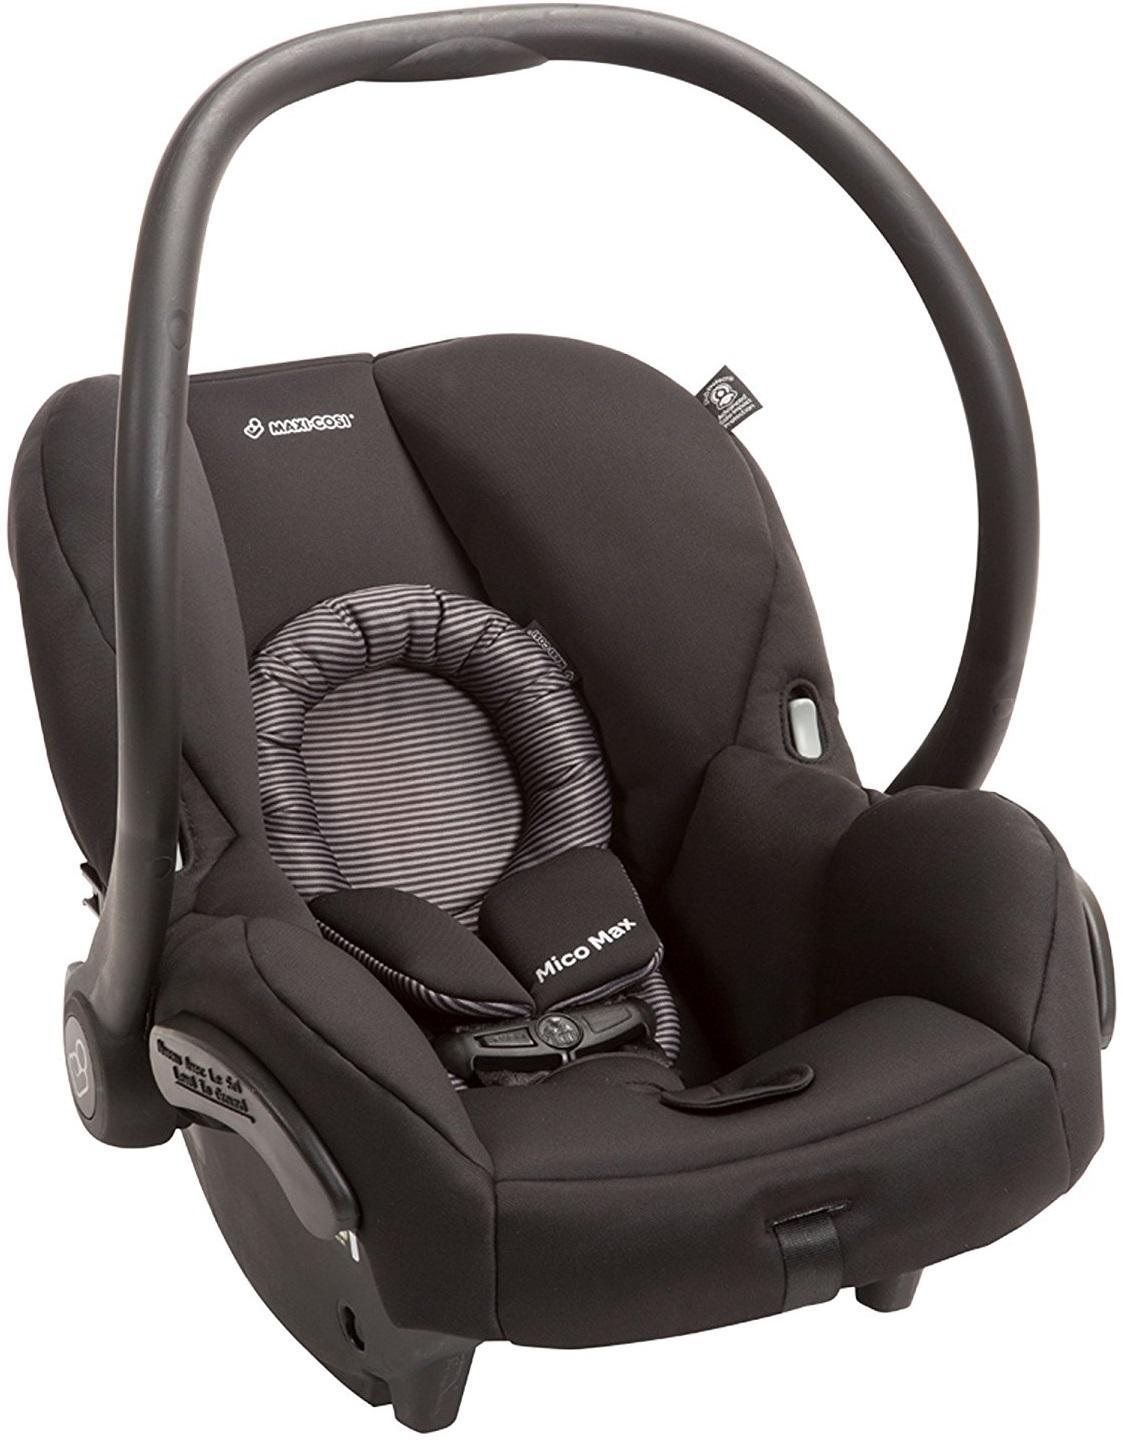 Maxi-Cosi Mico Max 30 vs Mico 30 : How Those Two Maxi-Cosi's Infant Car Seats Compared?